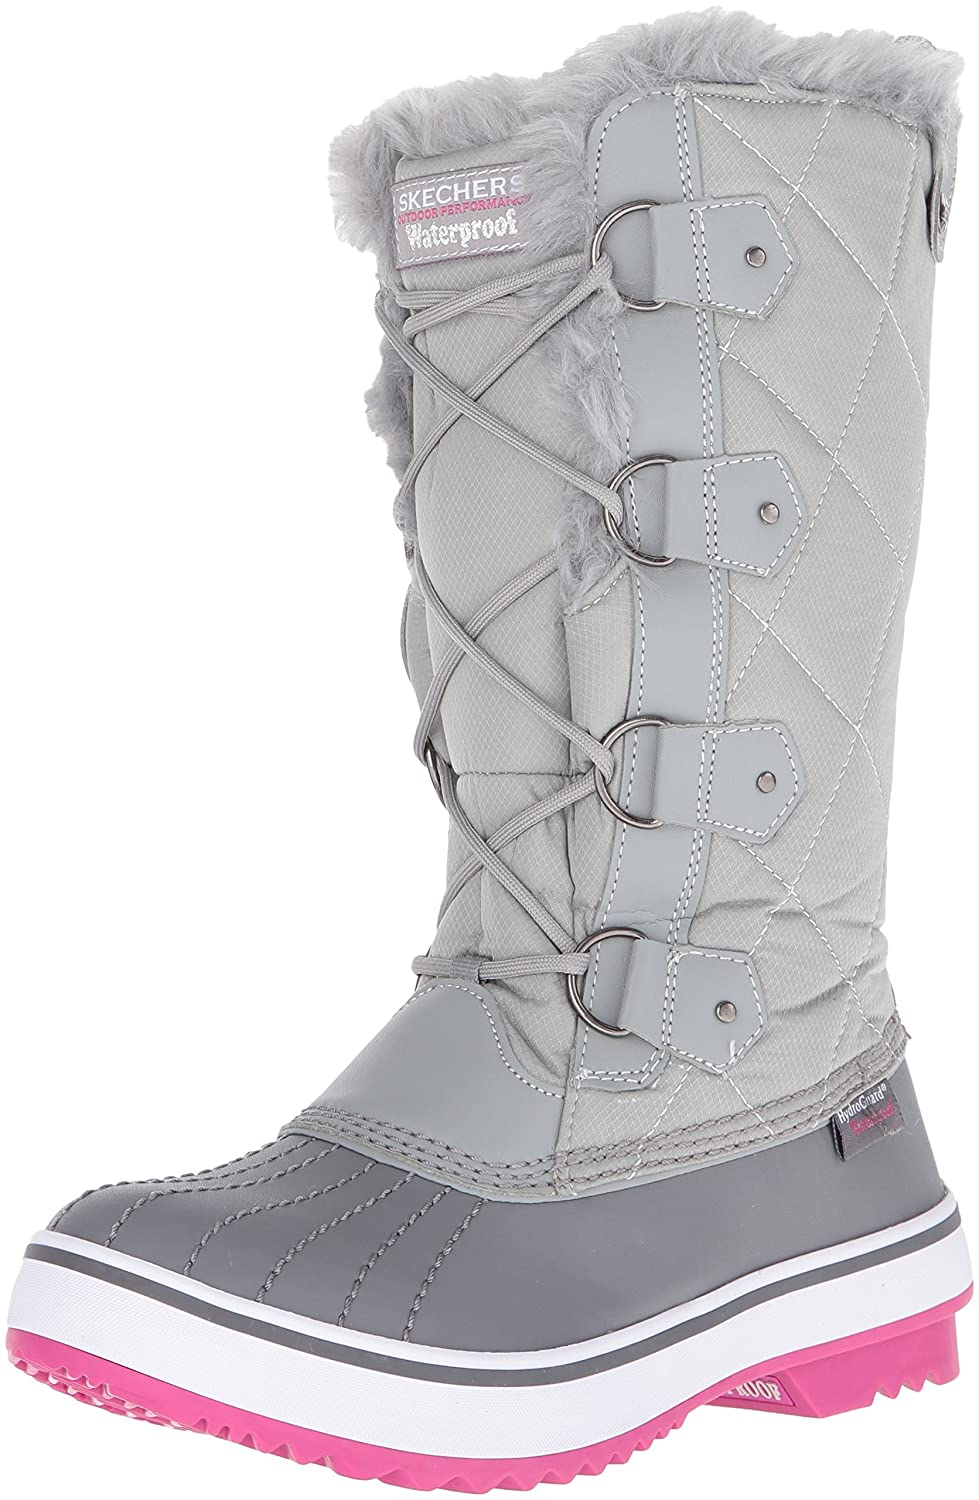 Skechers Women's Highlanders-Tall Quilt Snow Boot B01CEW24Z0 5.5 M US|Grey/Pink